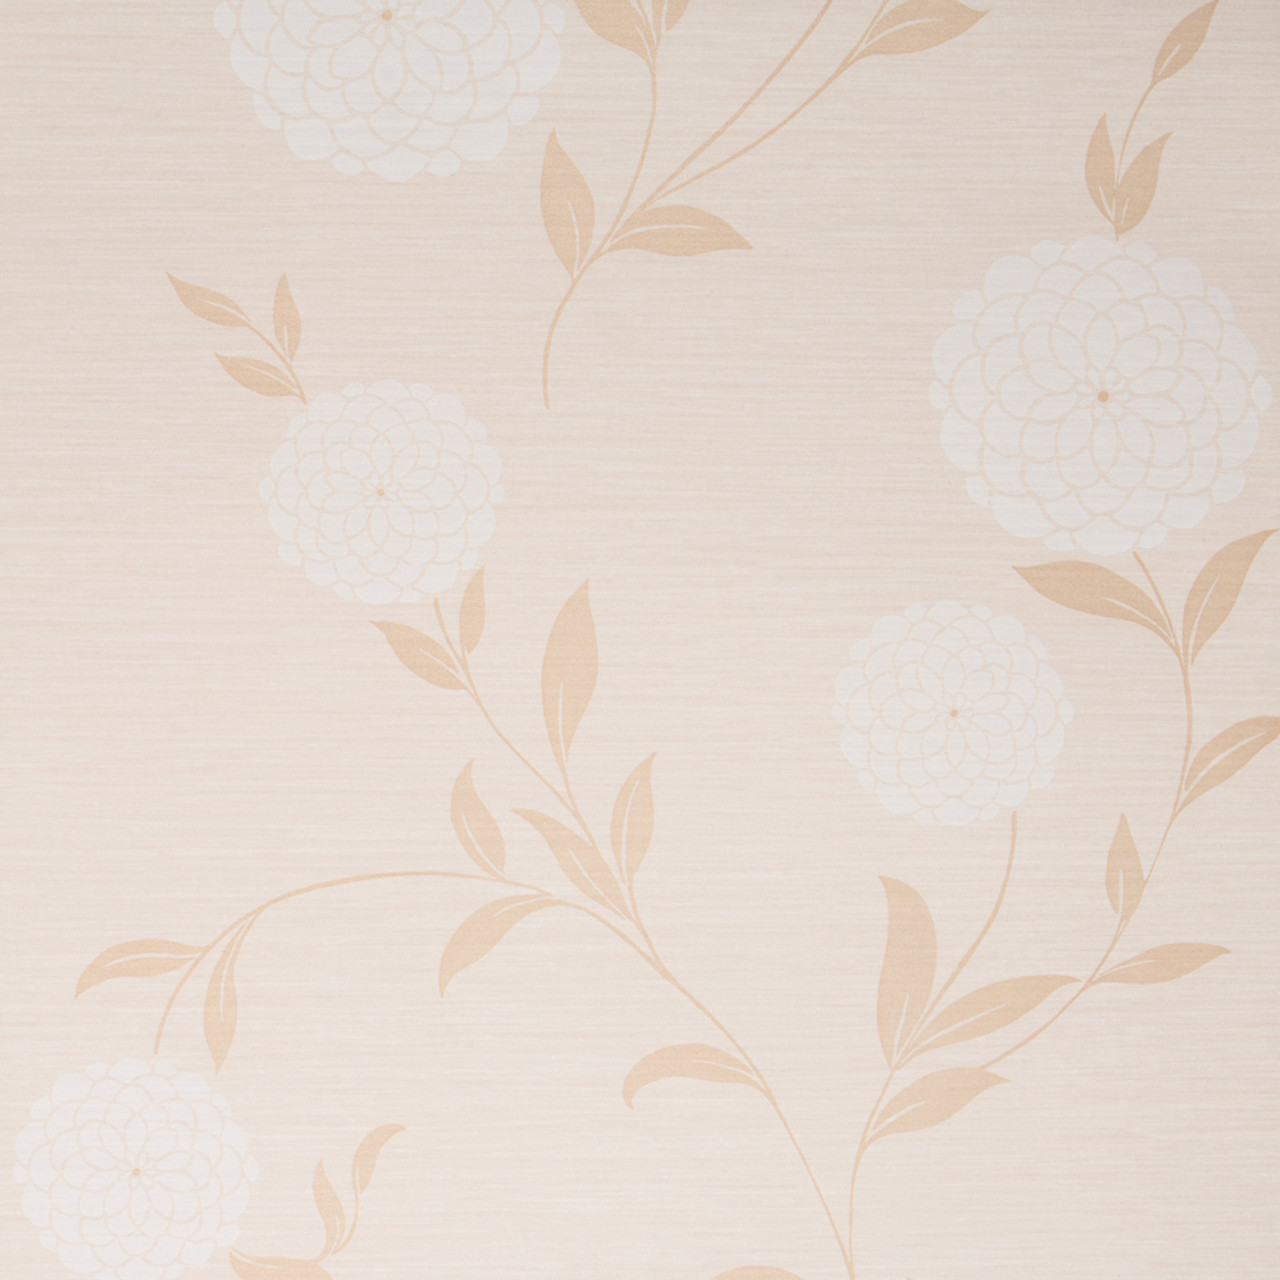 Pom Pom Wallpaper Beige White